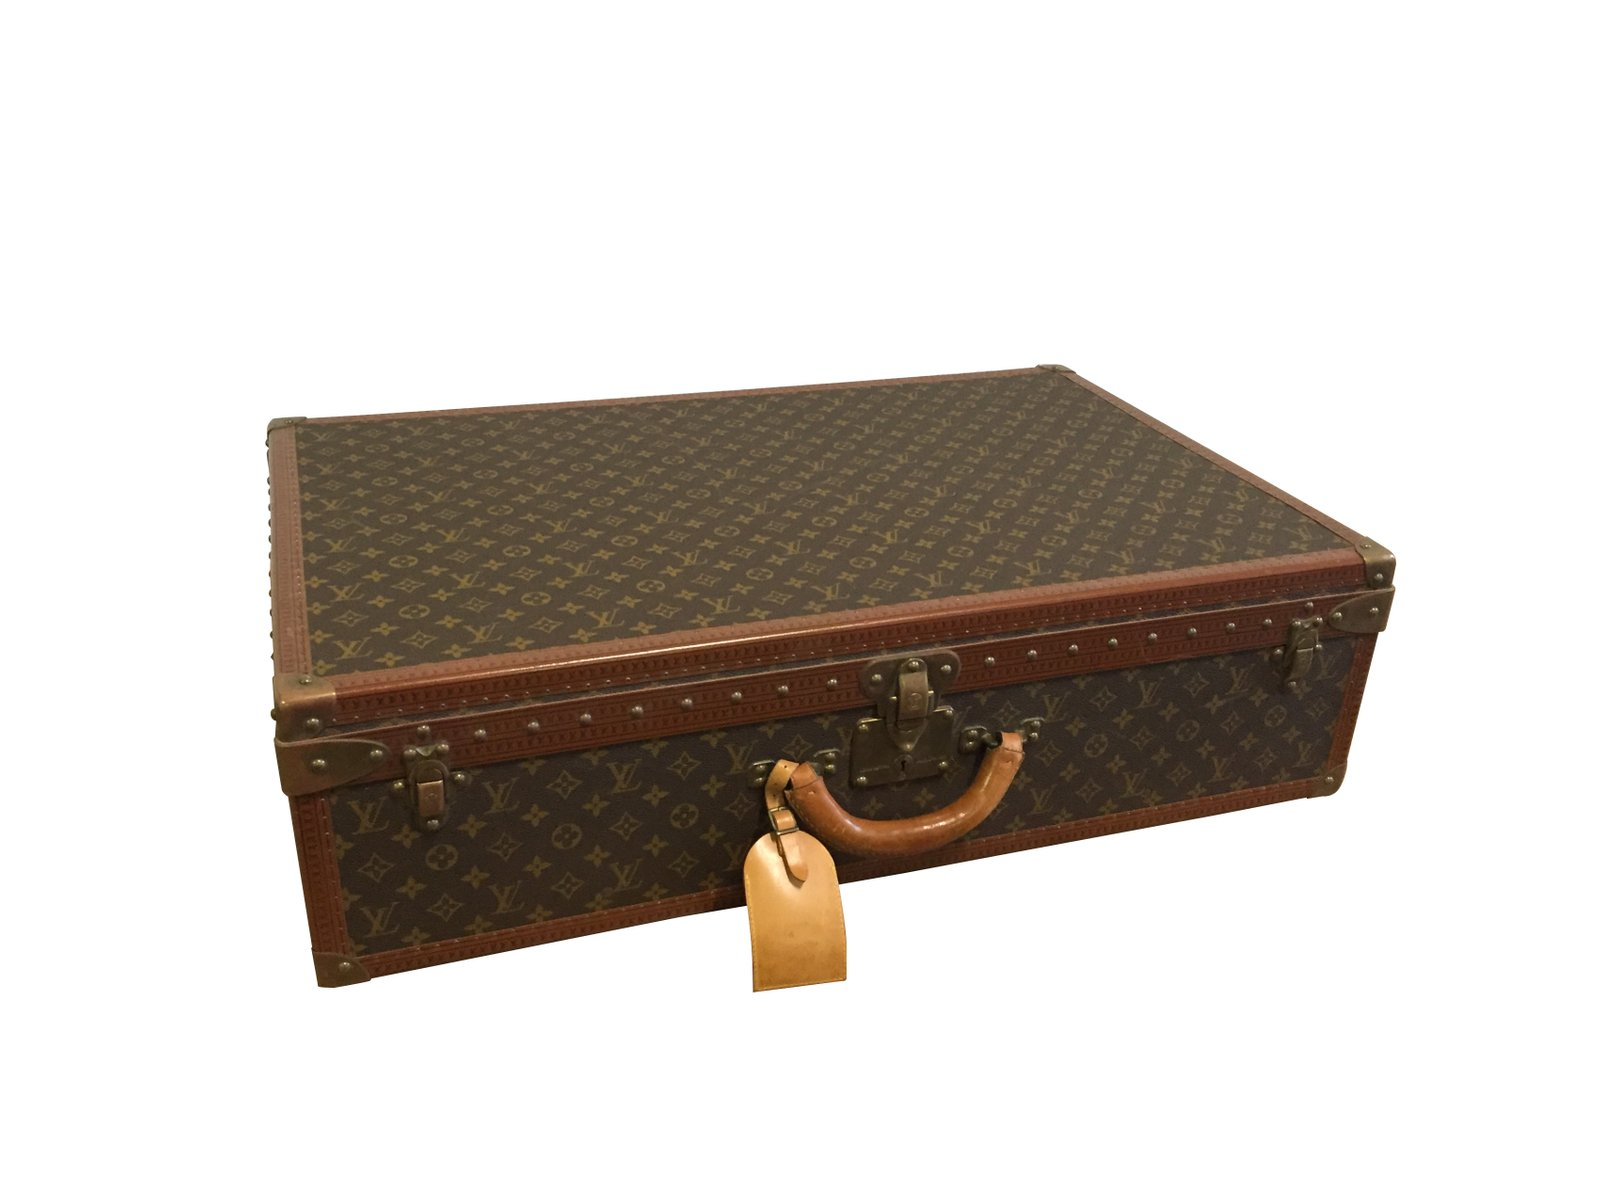 malle louis vuitton vintage en vente sur pamono. Black Bedroom Furniture Sets. Home Design Ideas